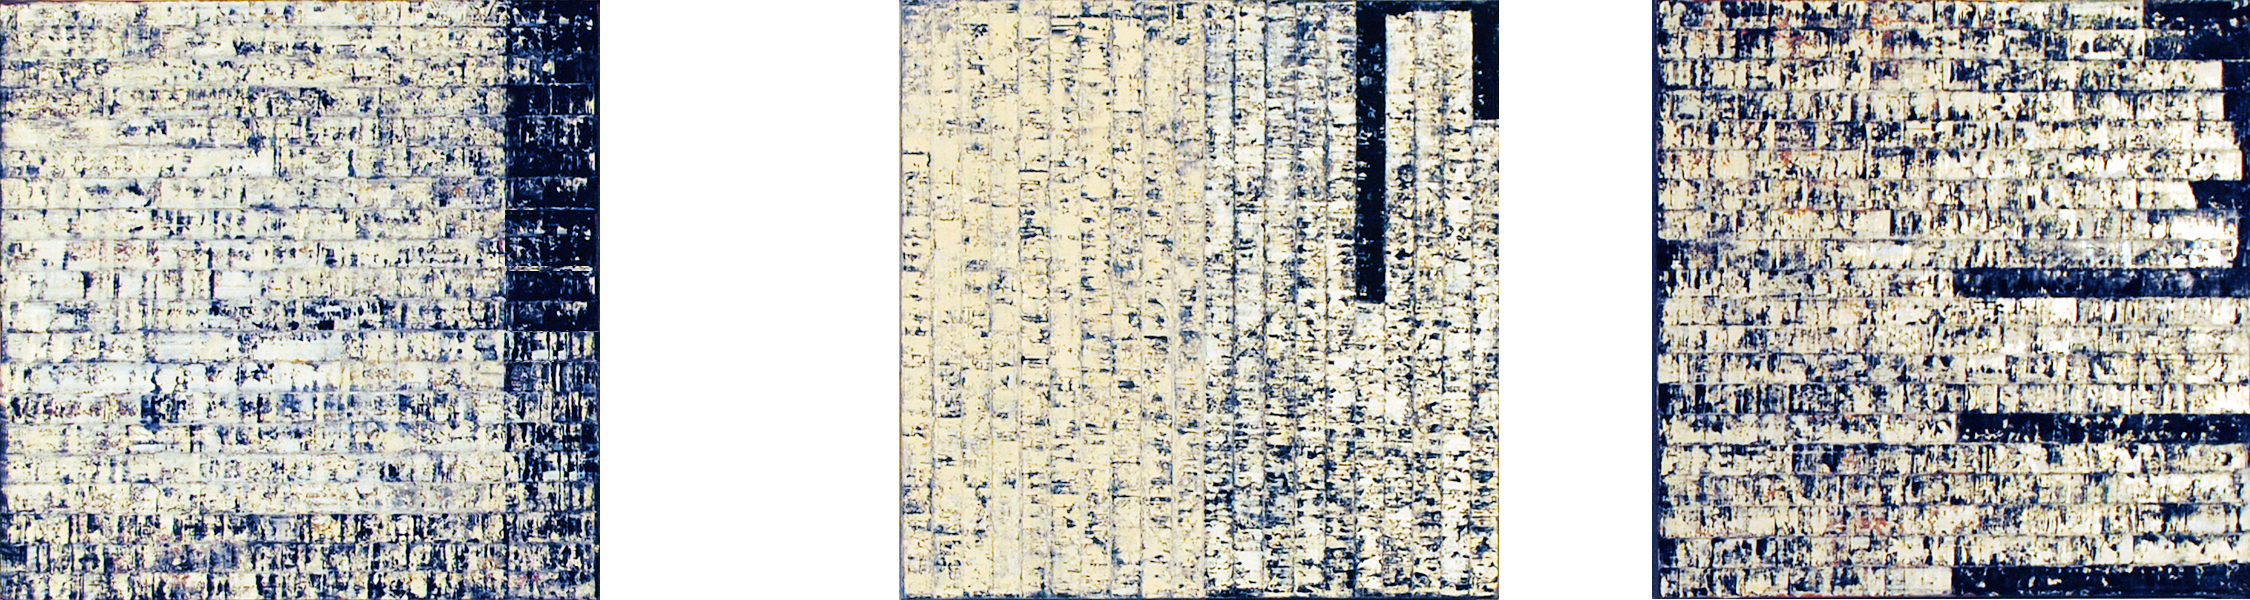 ISIS 20: Trilogy, 2010, Oil, acrylic on canvases, 20 x 75 inches.